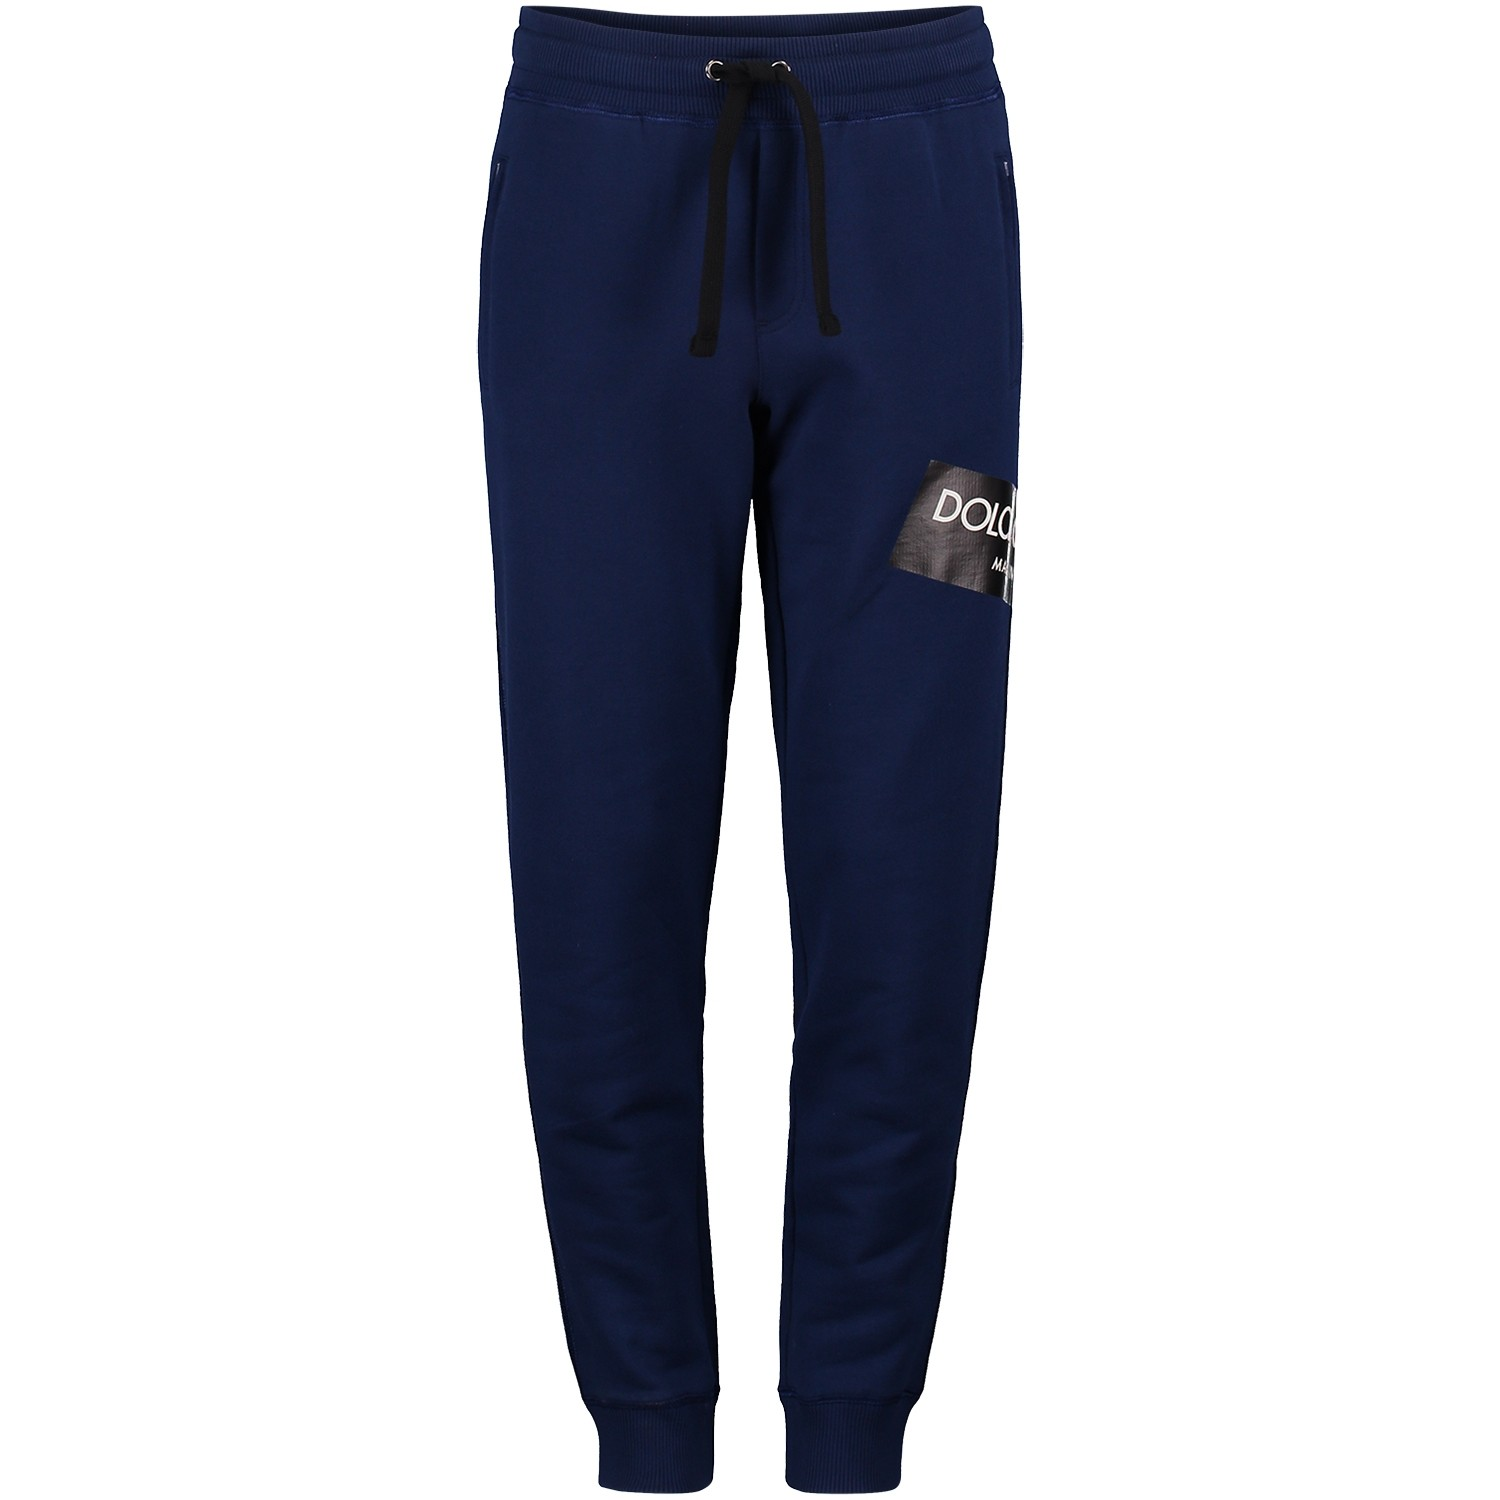 Picture of Dolce & Gabbana L4JPS6 kids pants cobalt blue